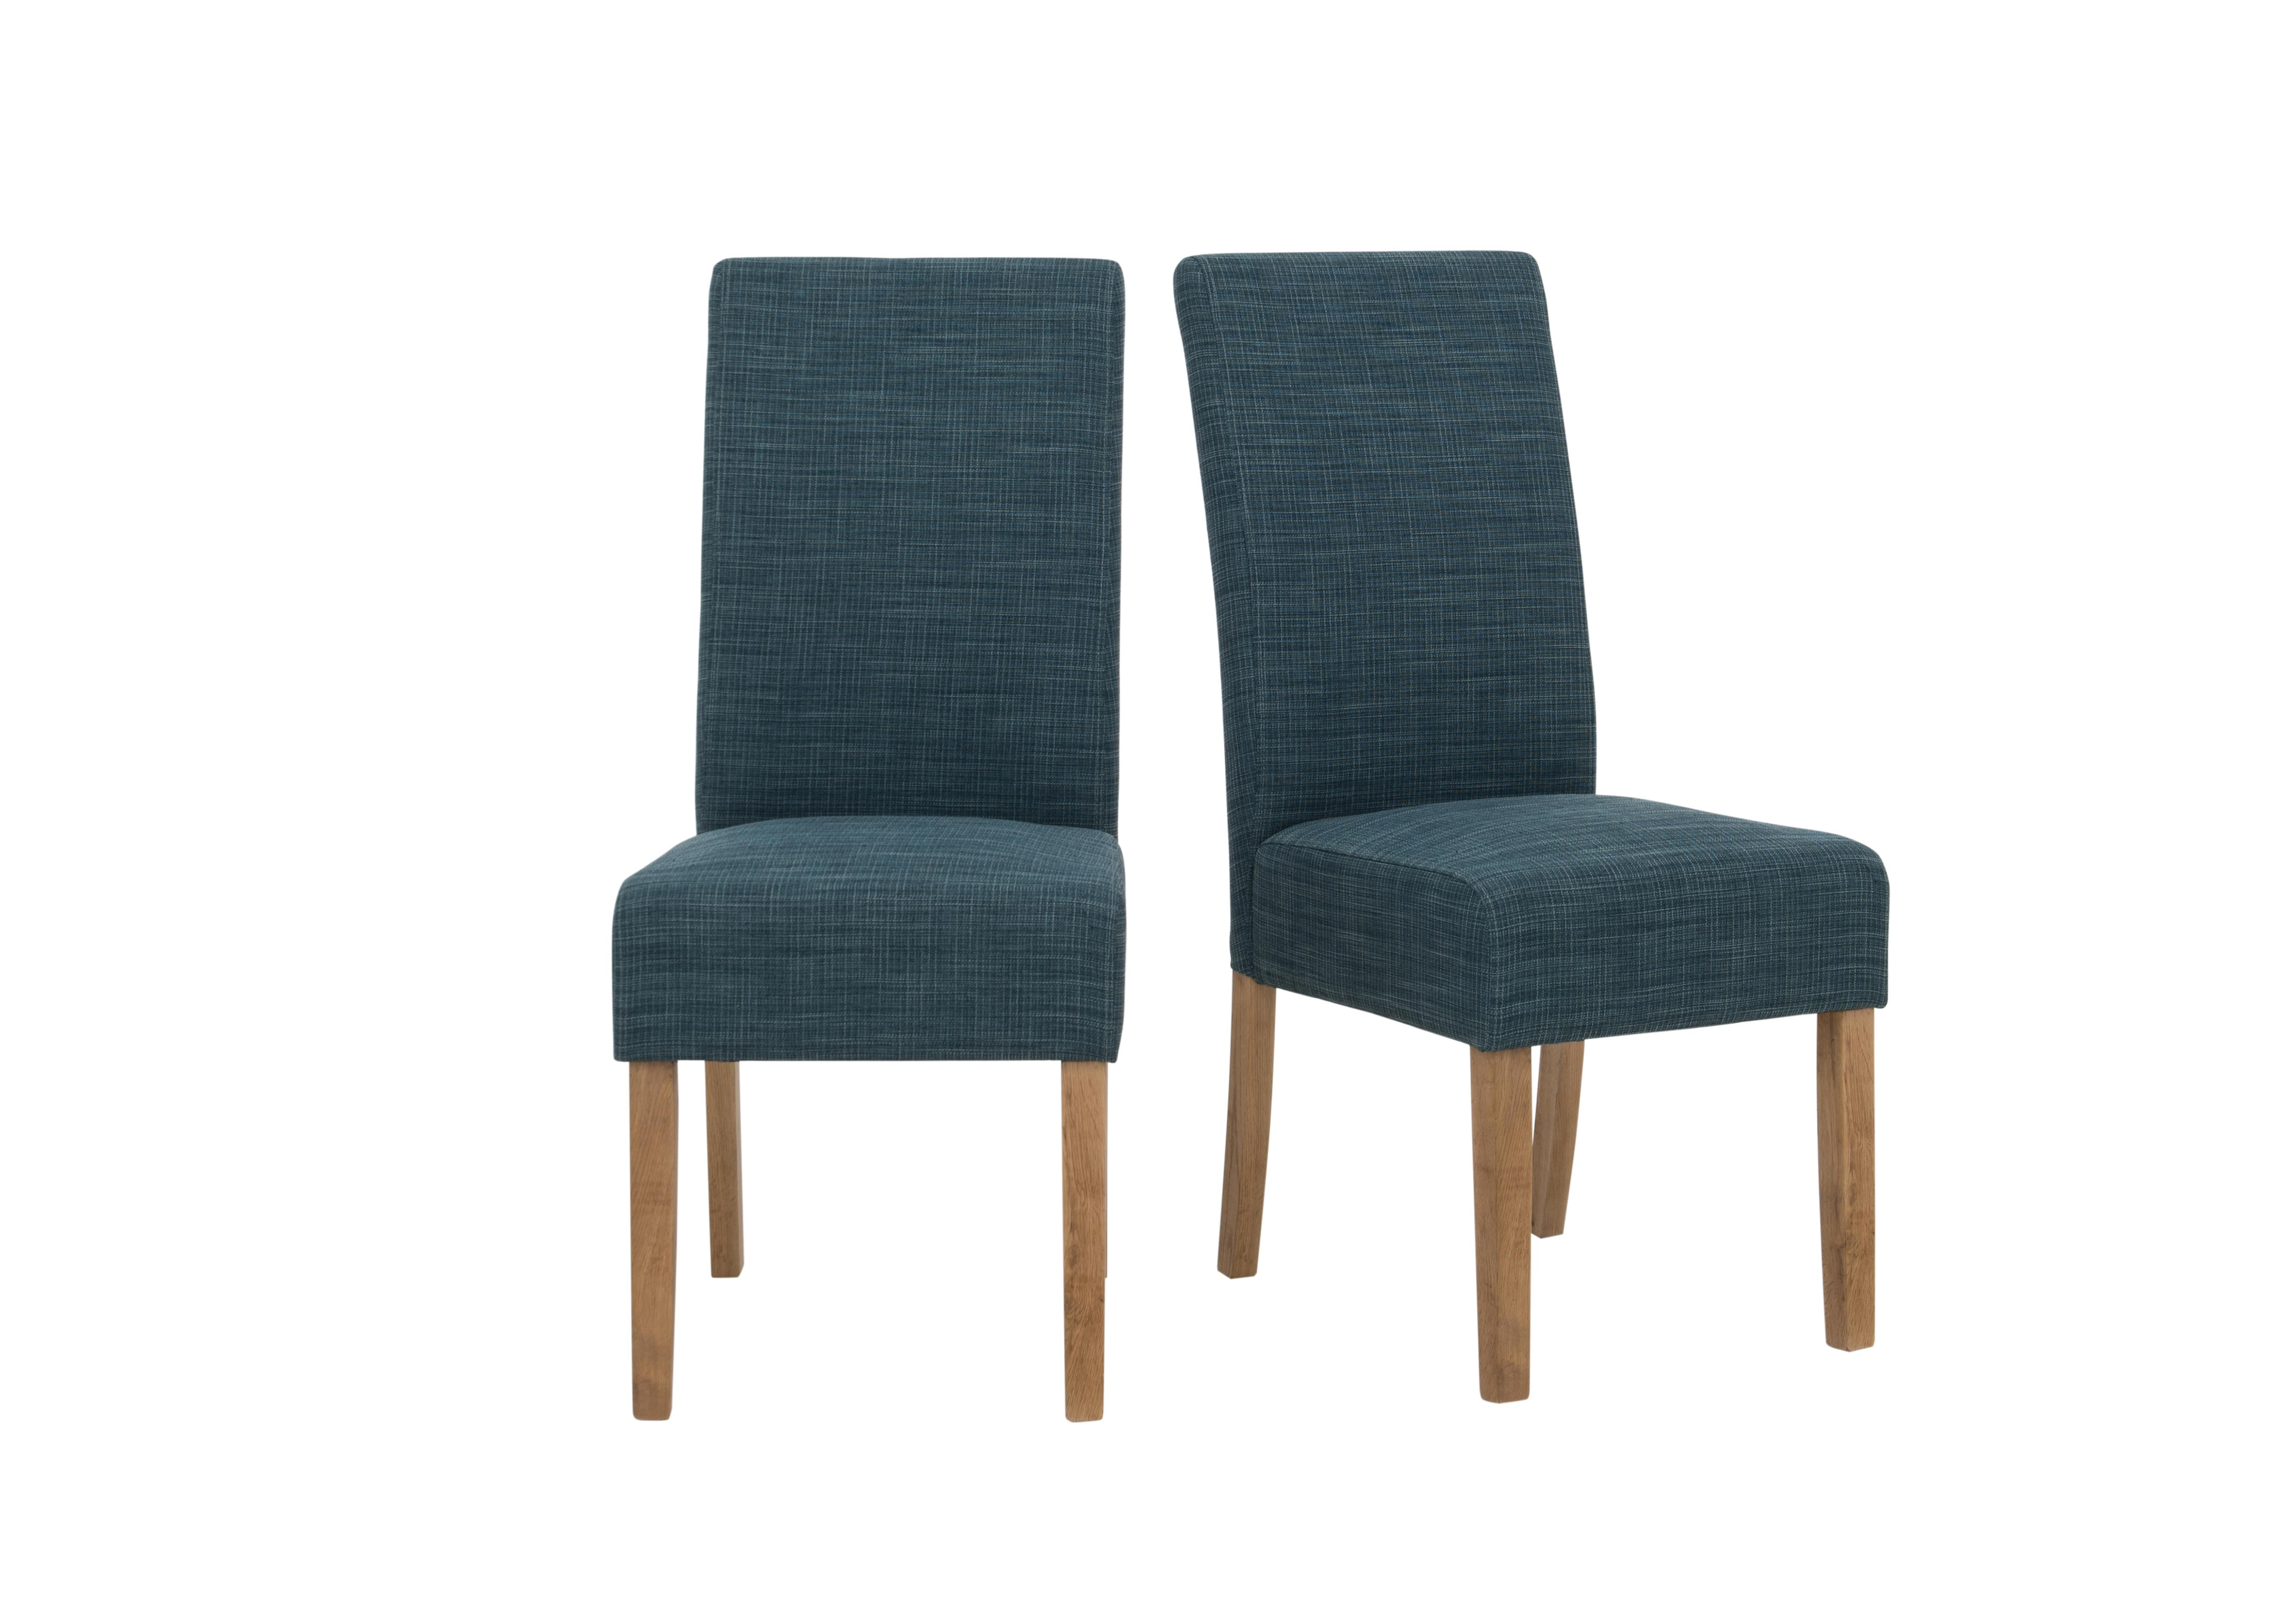 Save £40. Furnitureland California Pair Of Fabric Dining Chairs